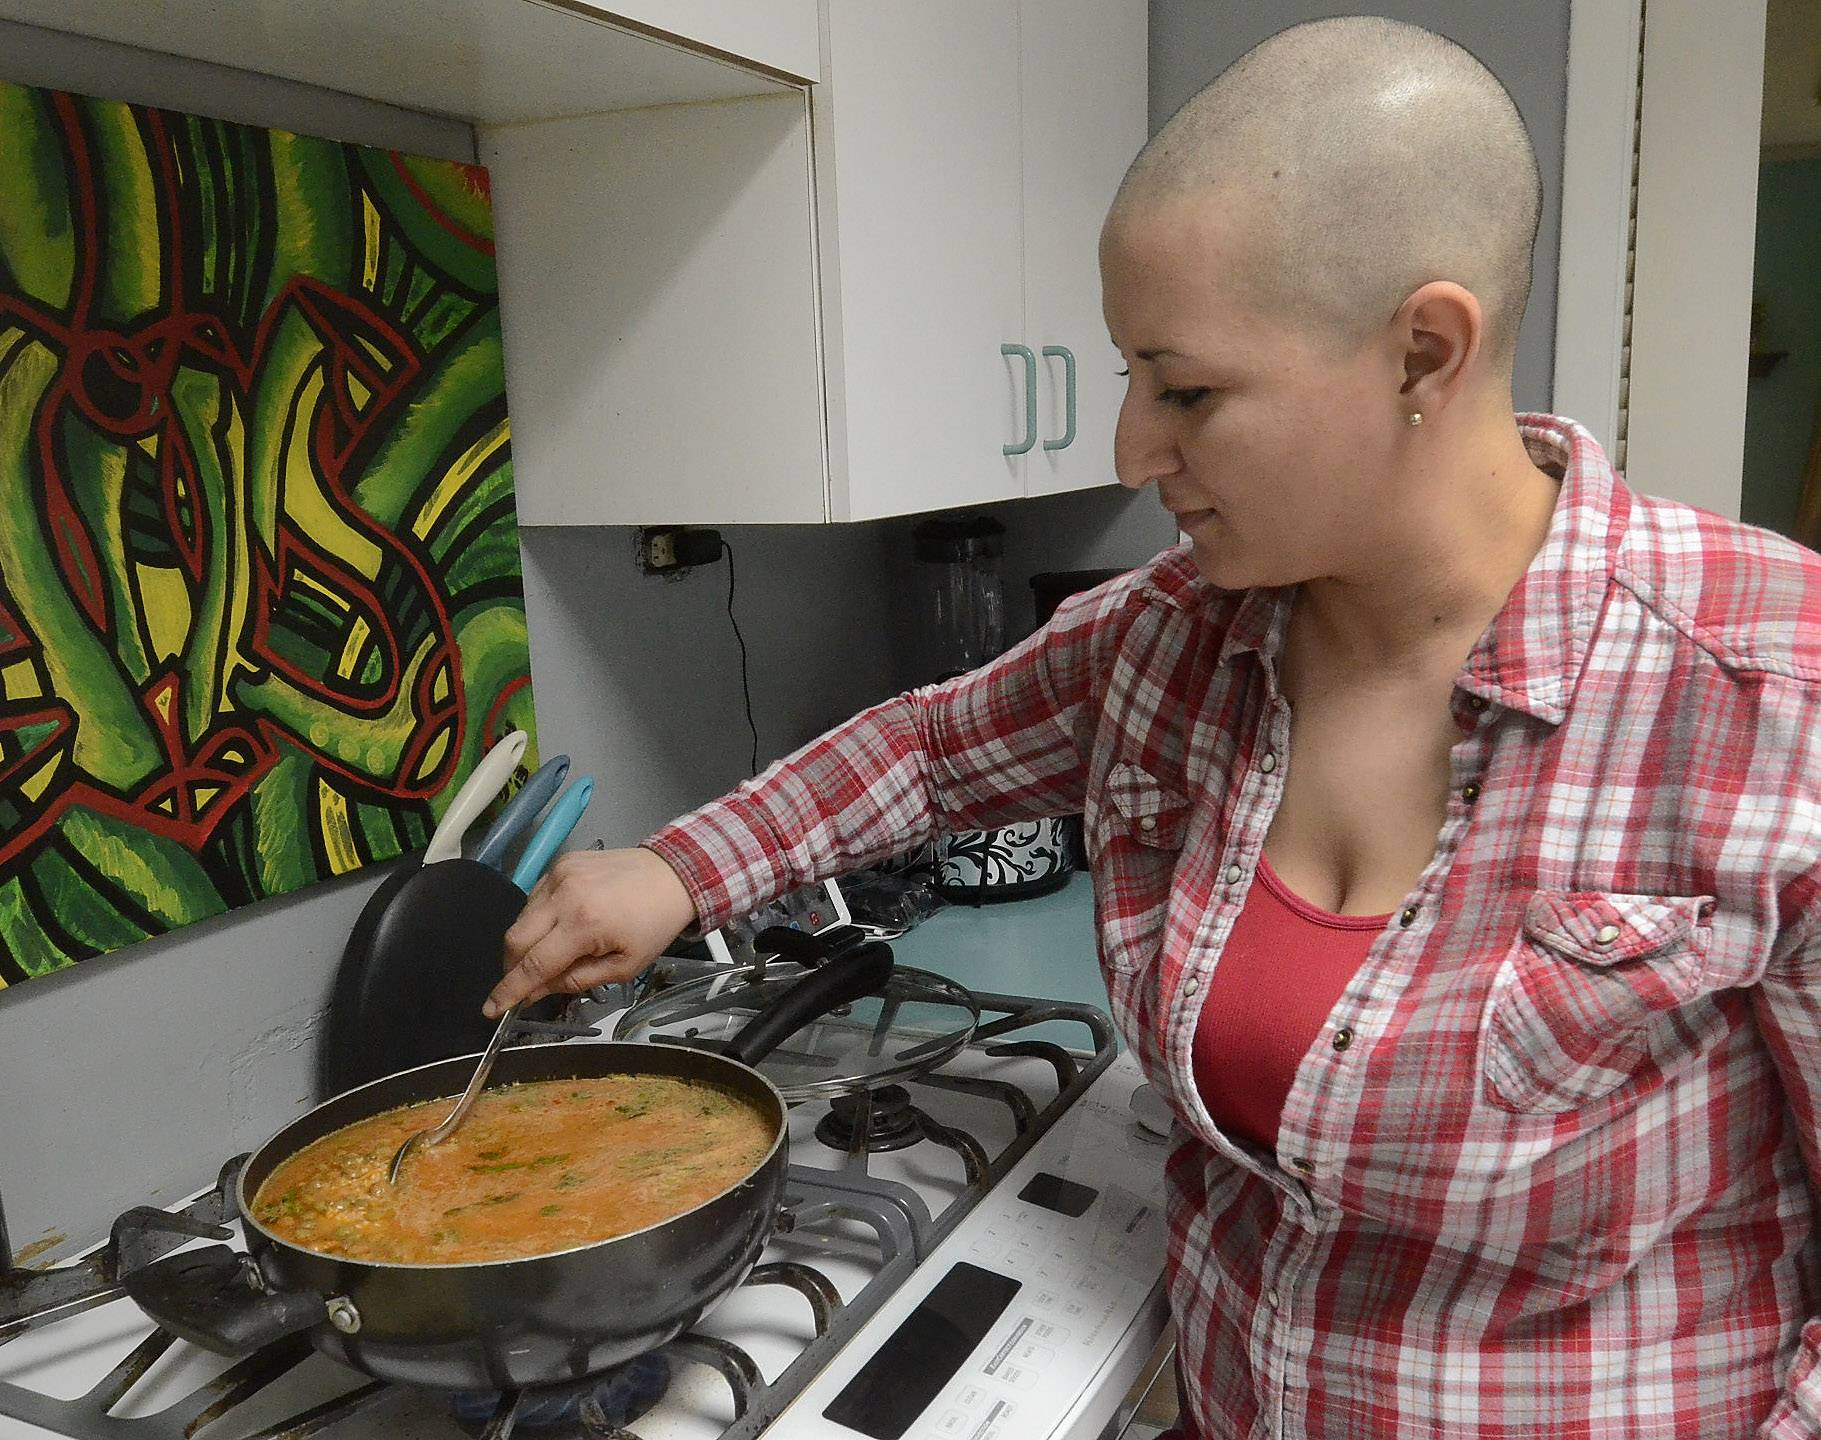 Cooking is another creative outlet for artist Luisa Maria Morales. She recently donated her hair at a St. Baldrick's fundraiser.